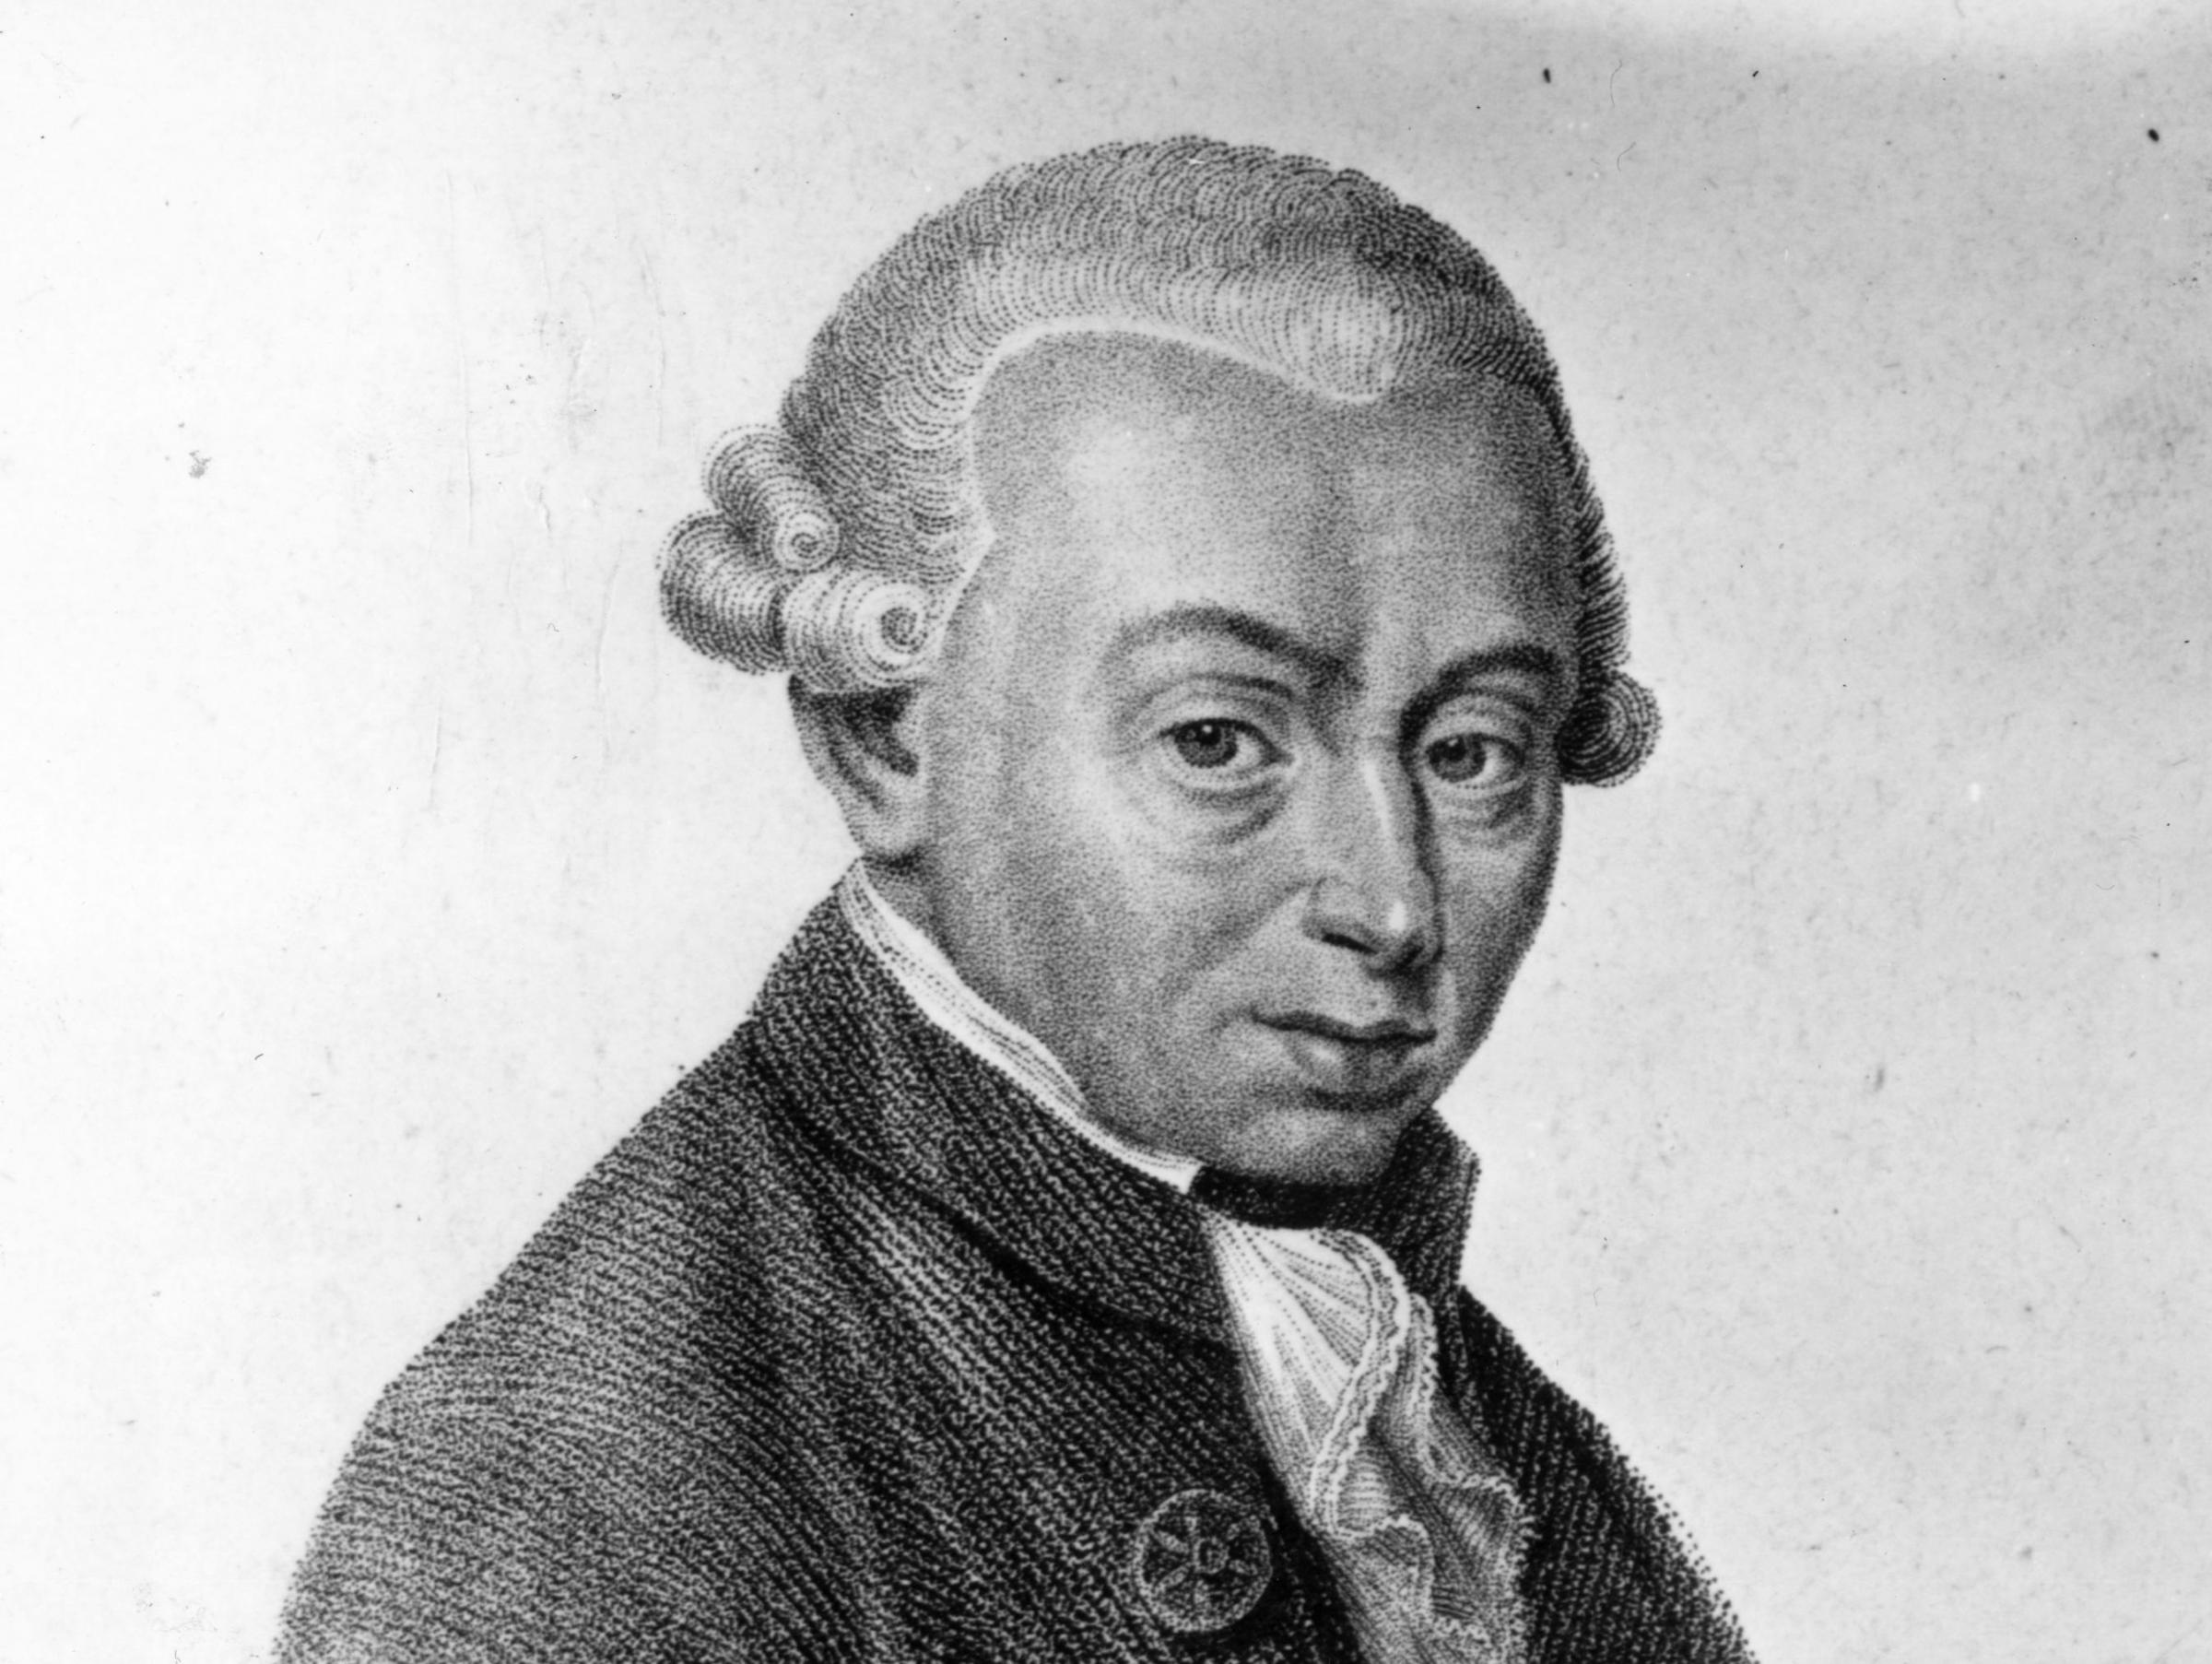 immanuel kant philosophy essay Immanuel kant – a study and a comparison with goethe, leonardo da vinci, bruno, plato and descartes,  the unity of reason: essays on kant's philosophy.